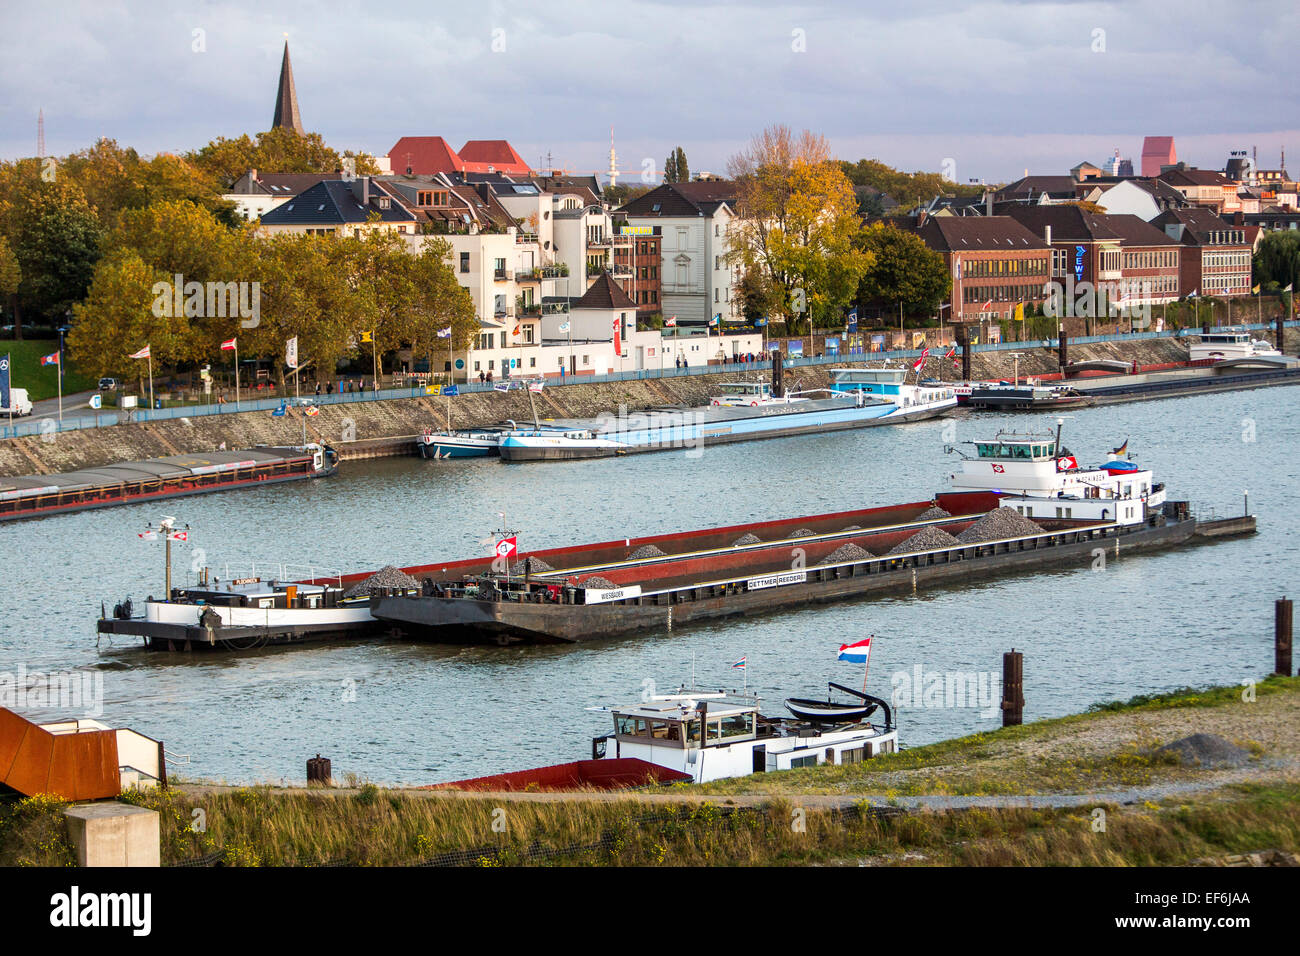 Duisburg-Ruhrort, Europe's largest inland port, river Rhine, - Stock Image